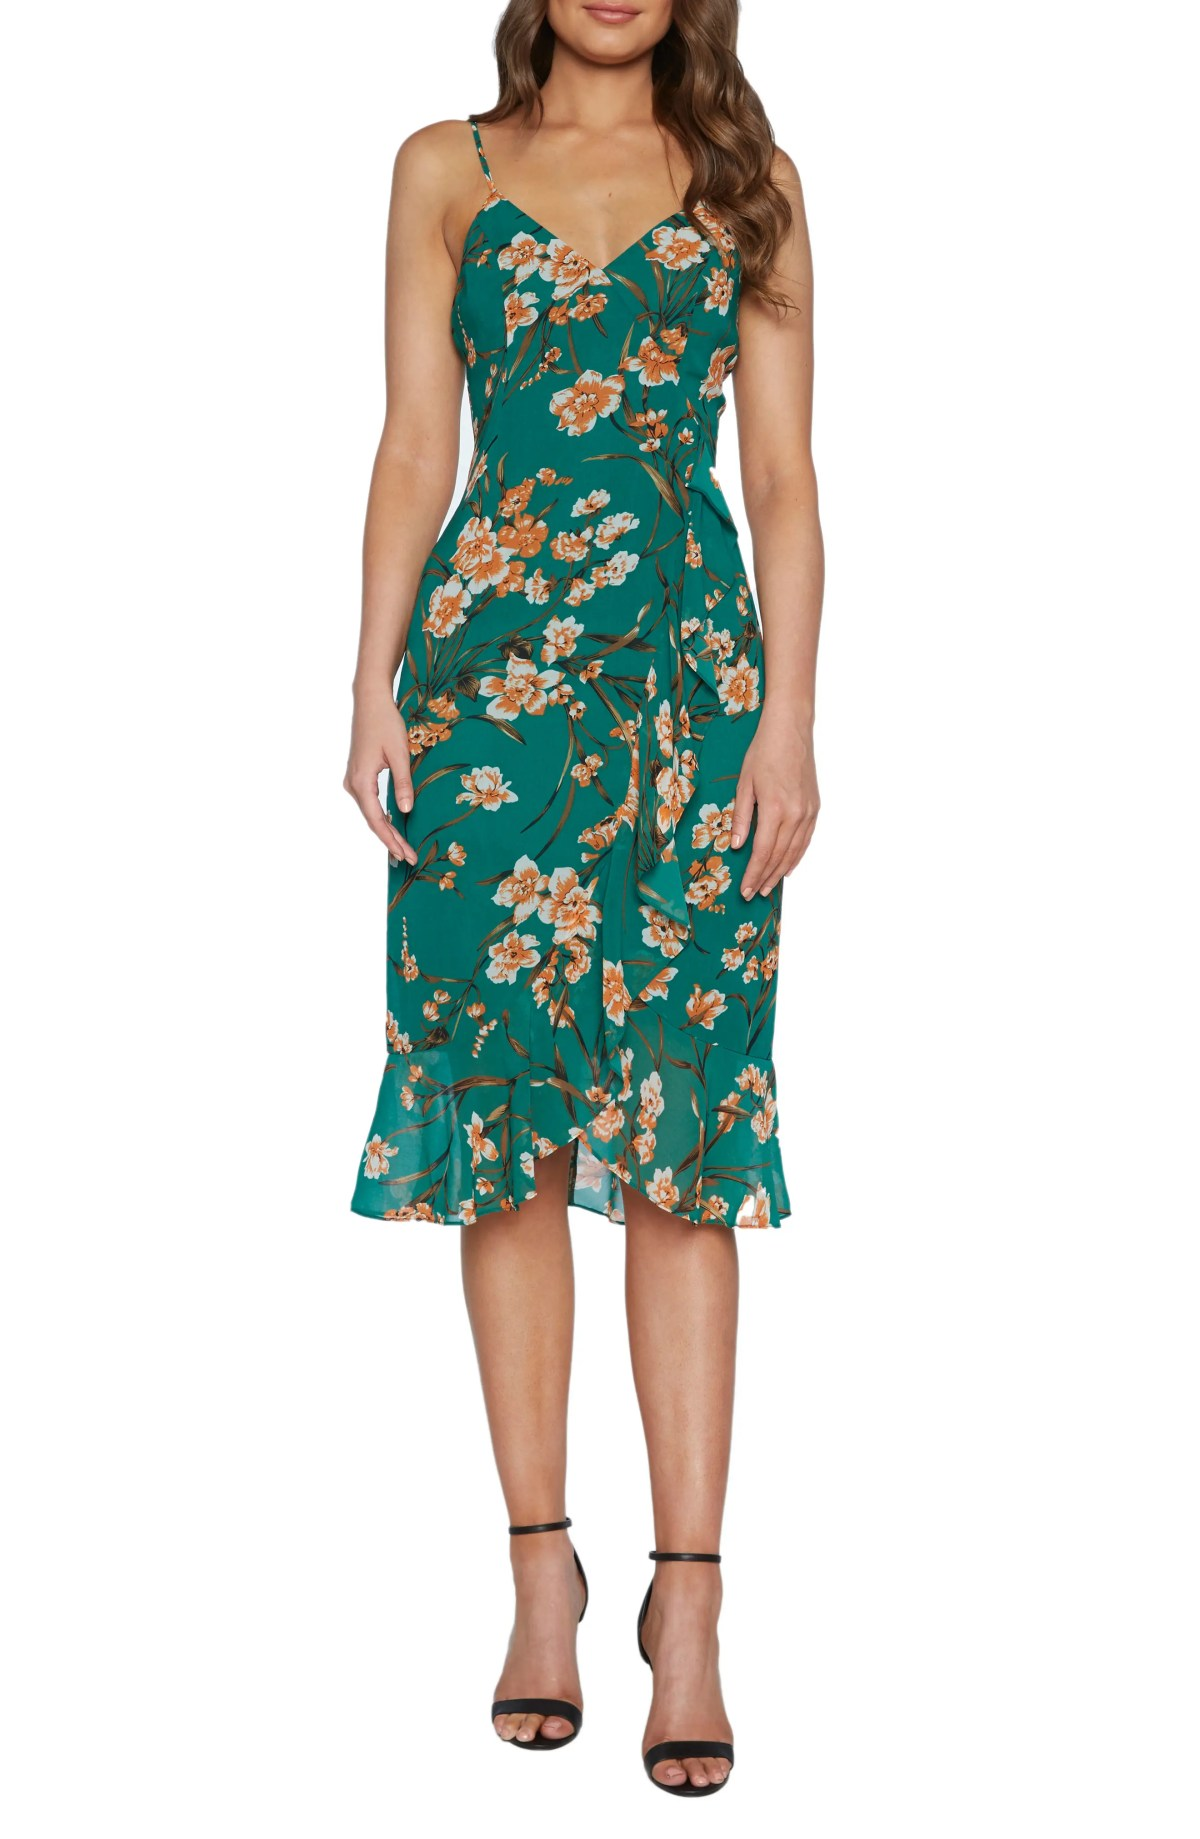 BARDOT Malika Floral Print Dress, Main, color, ORANGE FLORAL